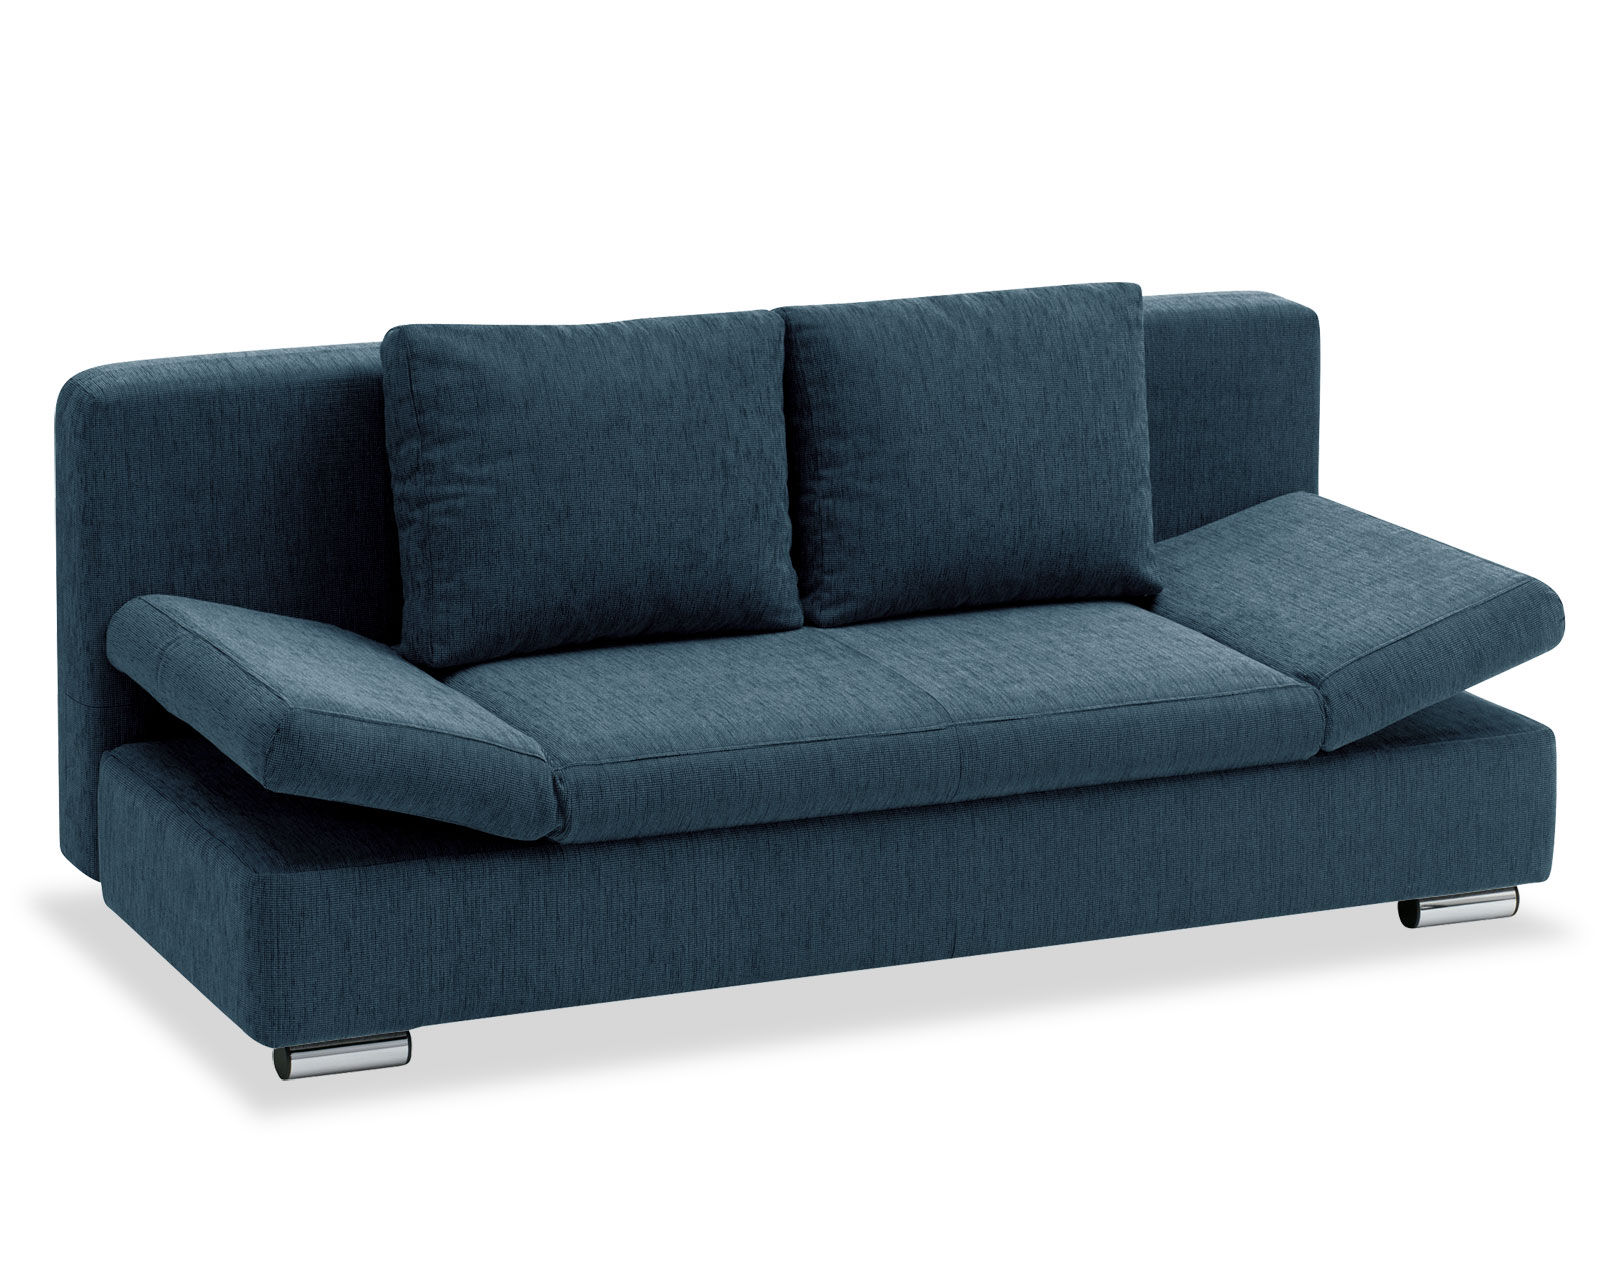 schlafsofa dauerschl fer bettkasten m belideen. Black Bedroom Furniture Sets. Home Design Ideas